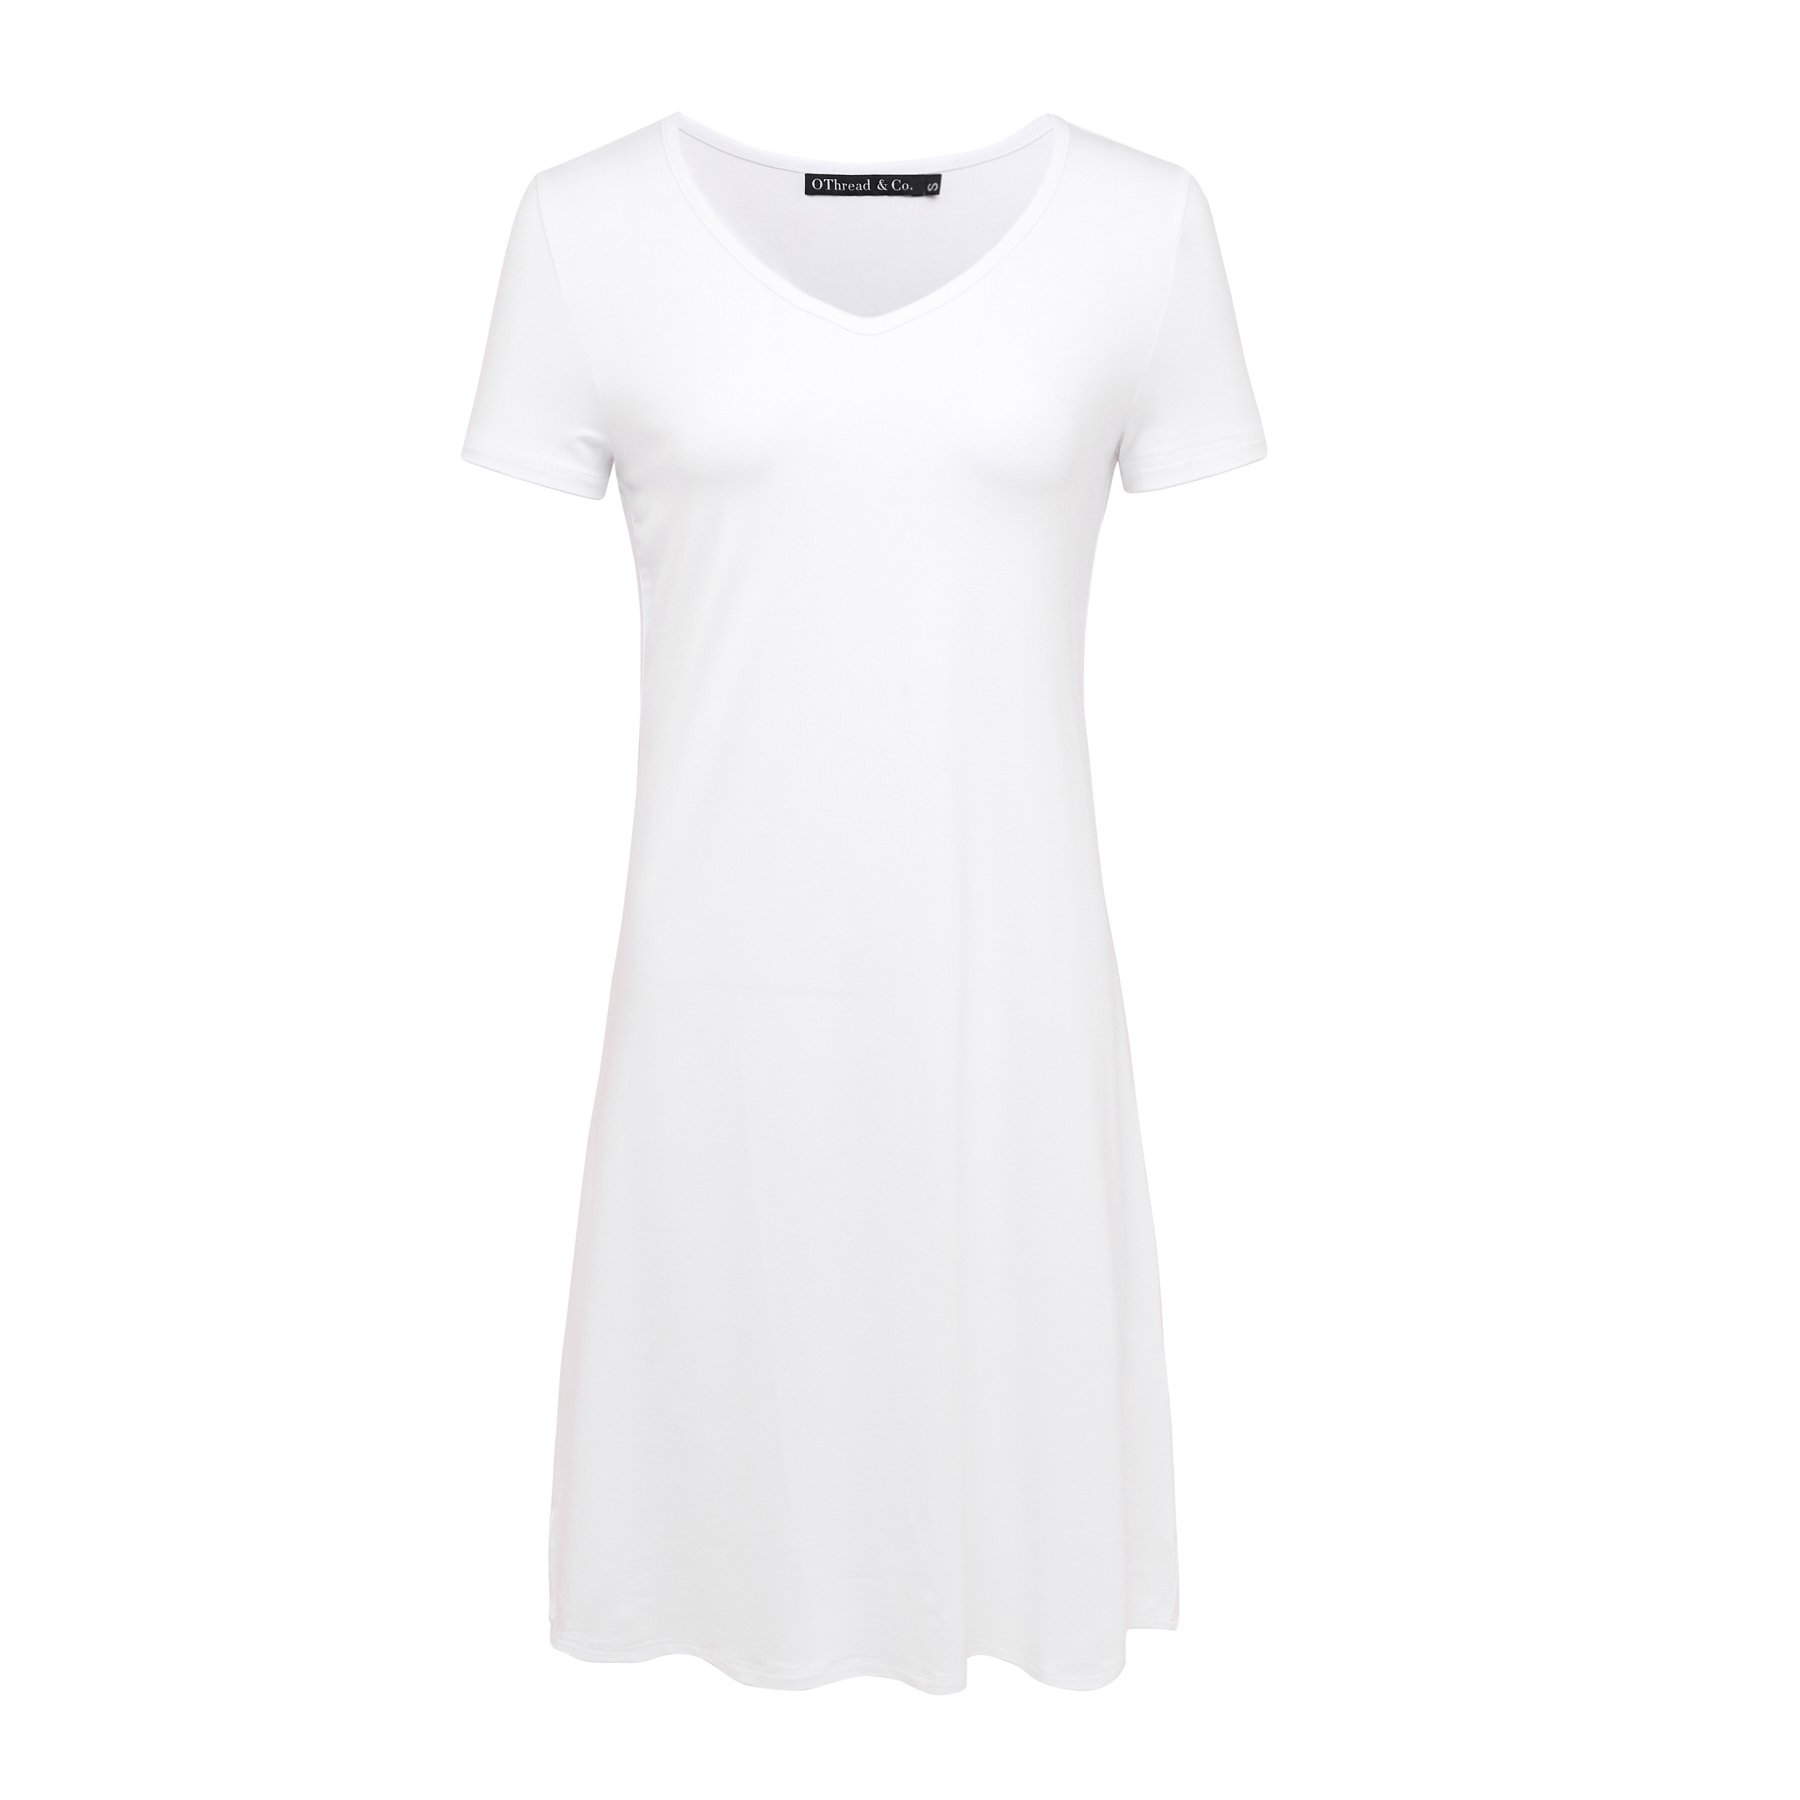 OThread & Co. Women's Plain Short Sleeves Nightgown Loose Fit Sleepwear Nightshirt Dress (X-Large, White)